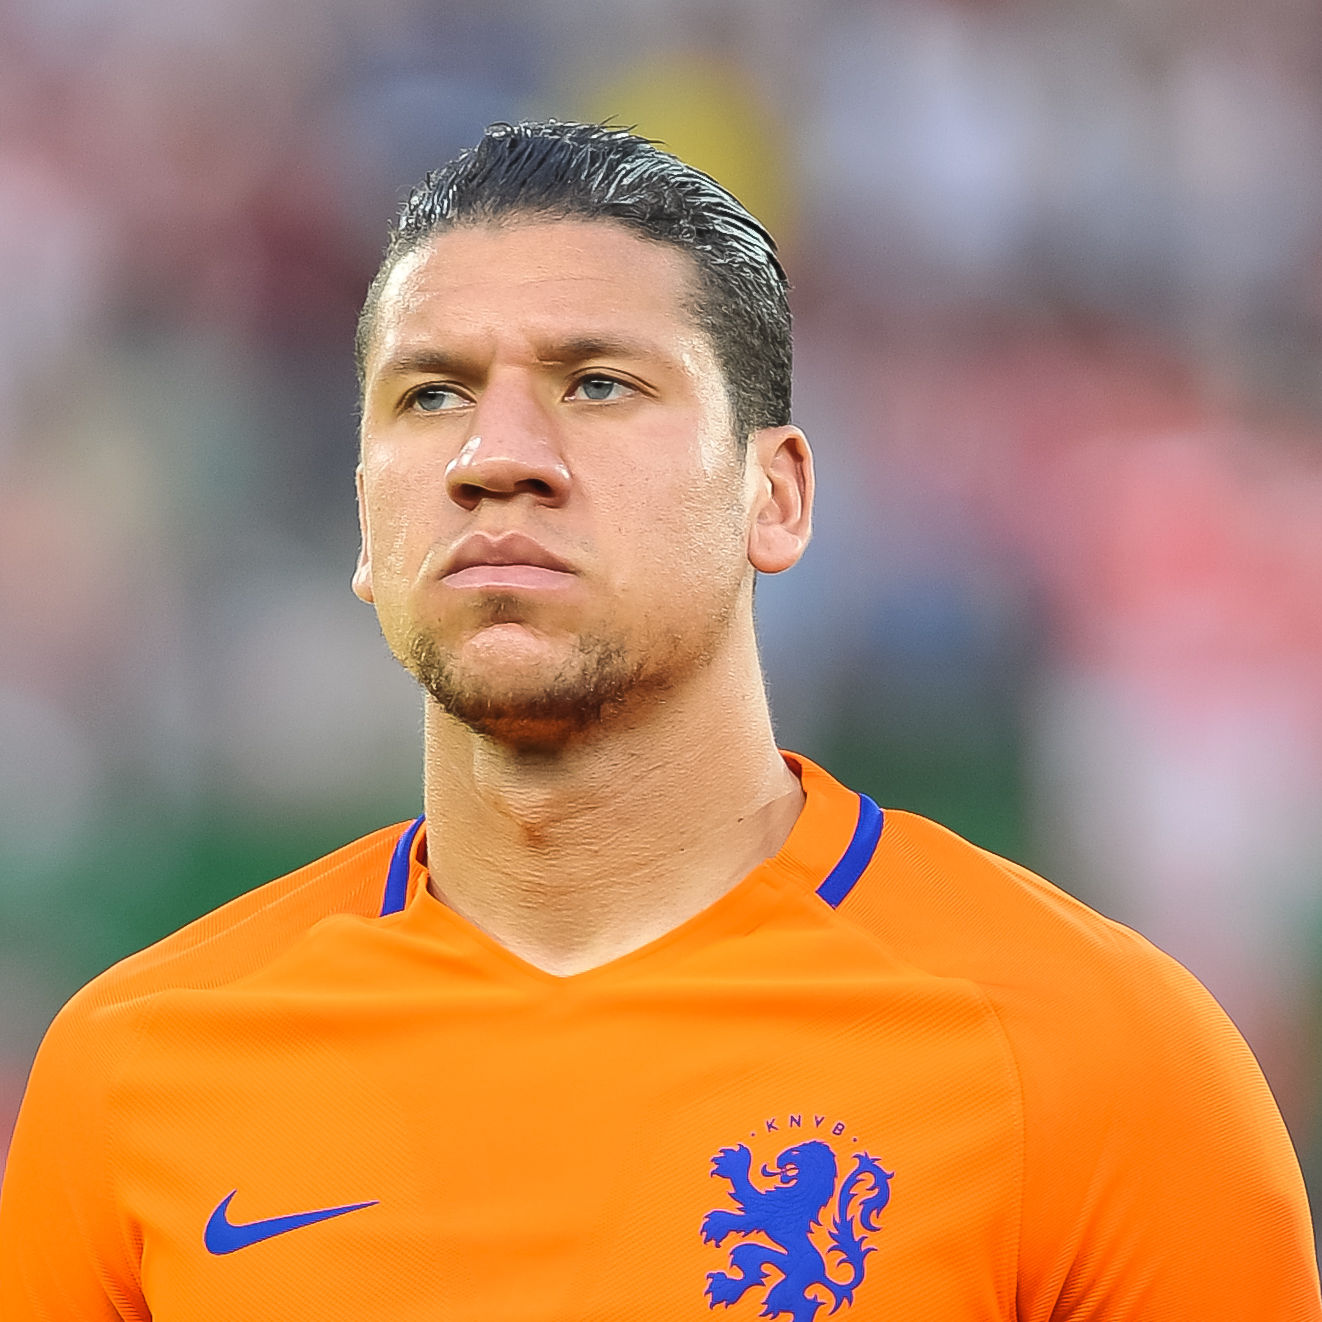 The 27-year old son of father (?) and mother(?) Jeffrey Bruma in 2018 photo. Jeffrey Bruma earned a  million dollar salary - leaving the net worth at 4.3 million in 2018